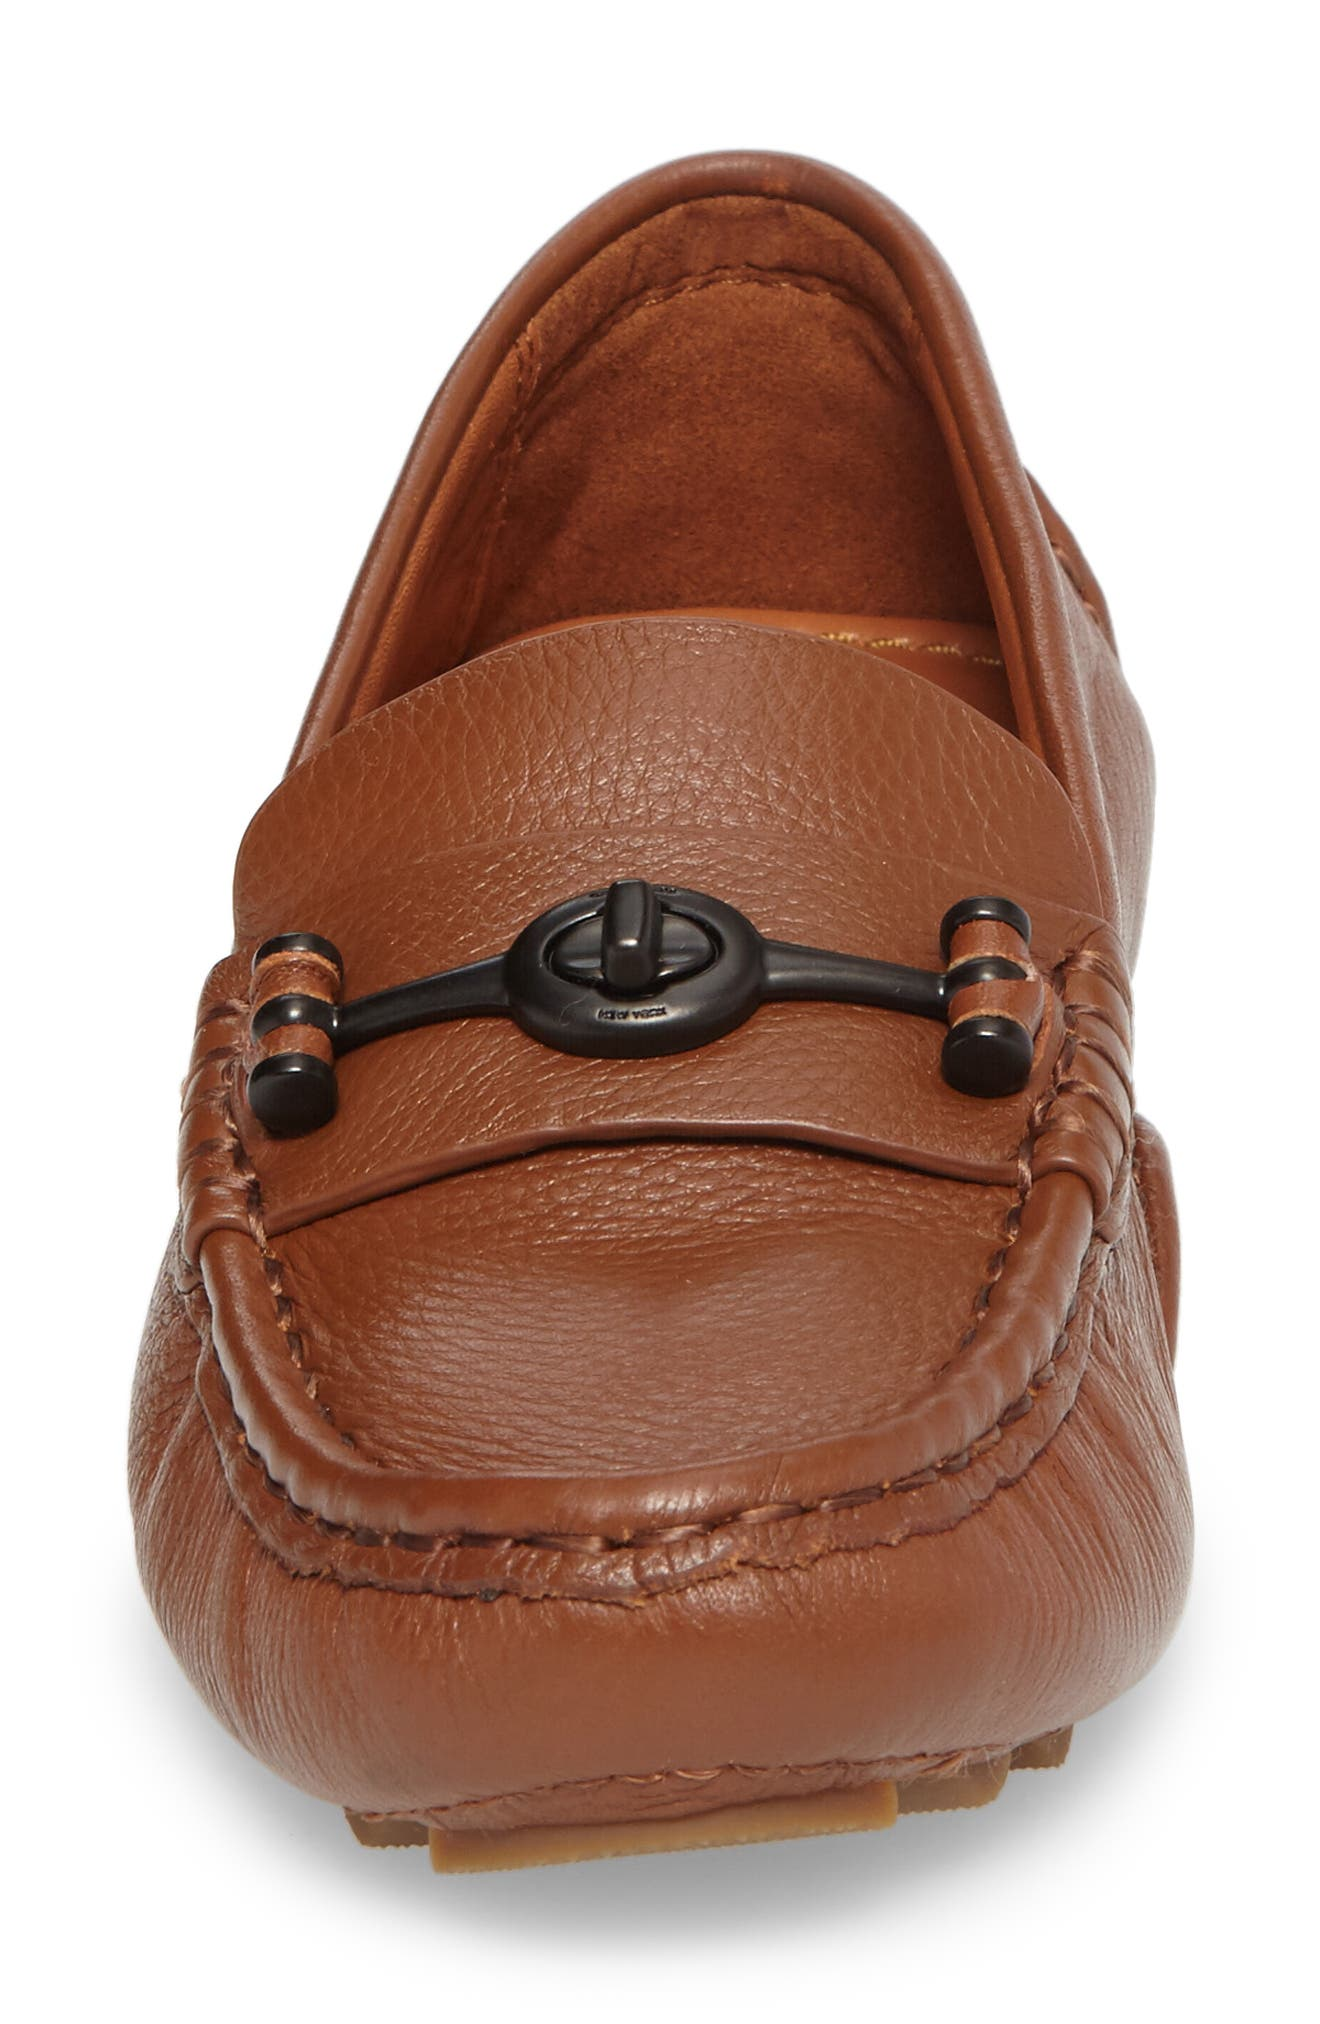 Crosby Driver Loafer,                             Alternate thumbnail 4, color,                             SADDLE LEATHER